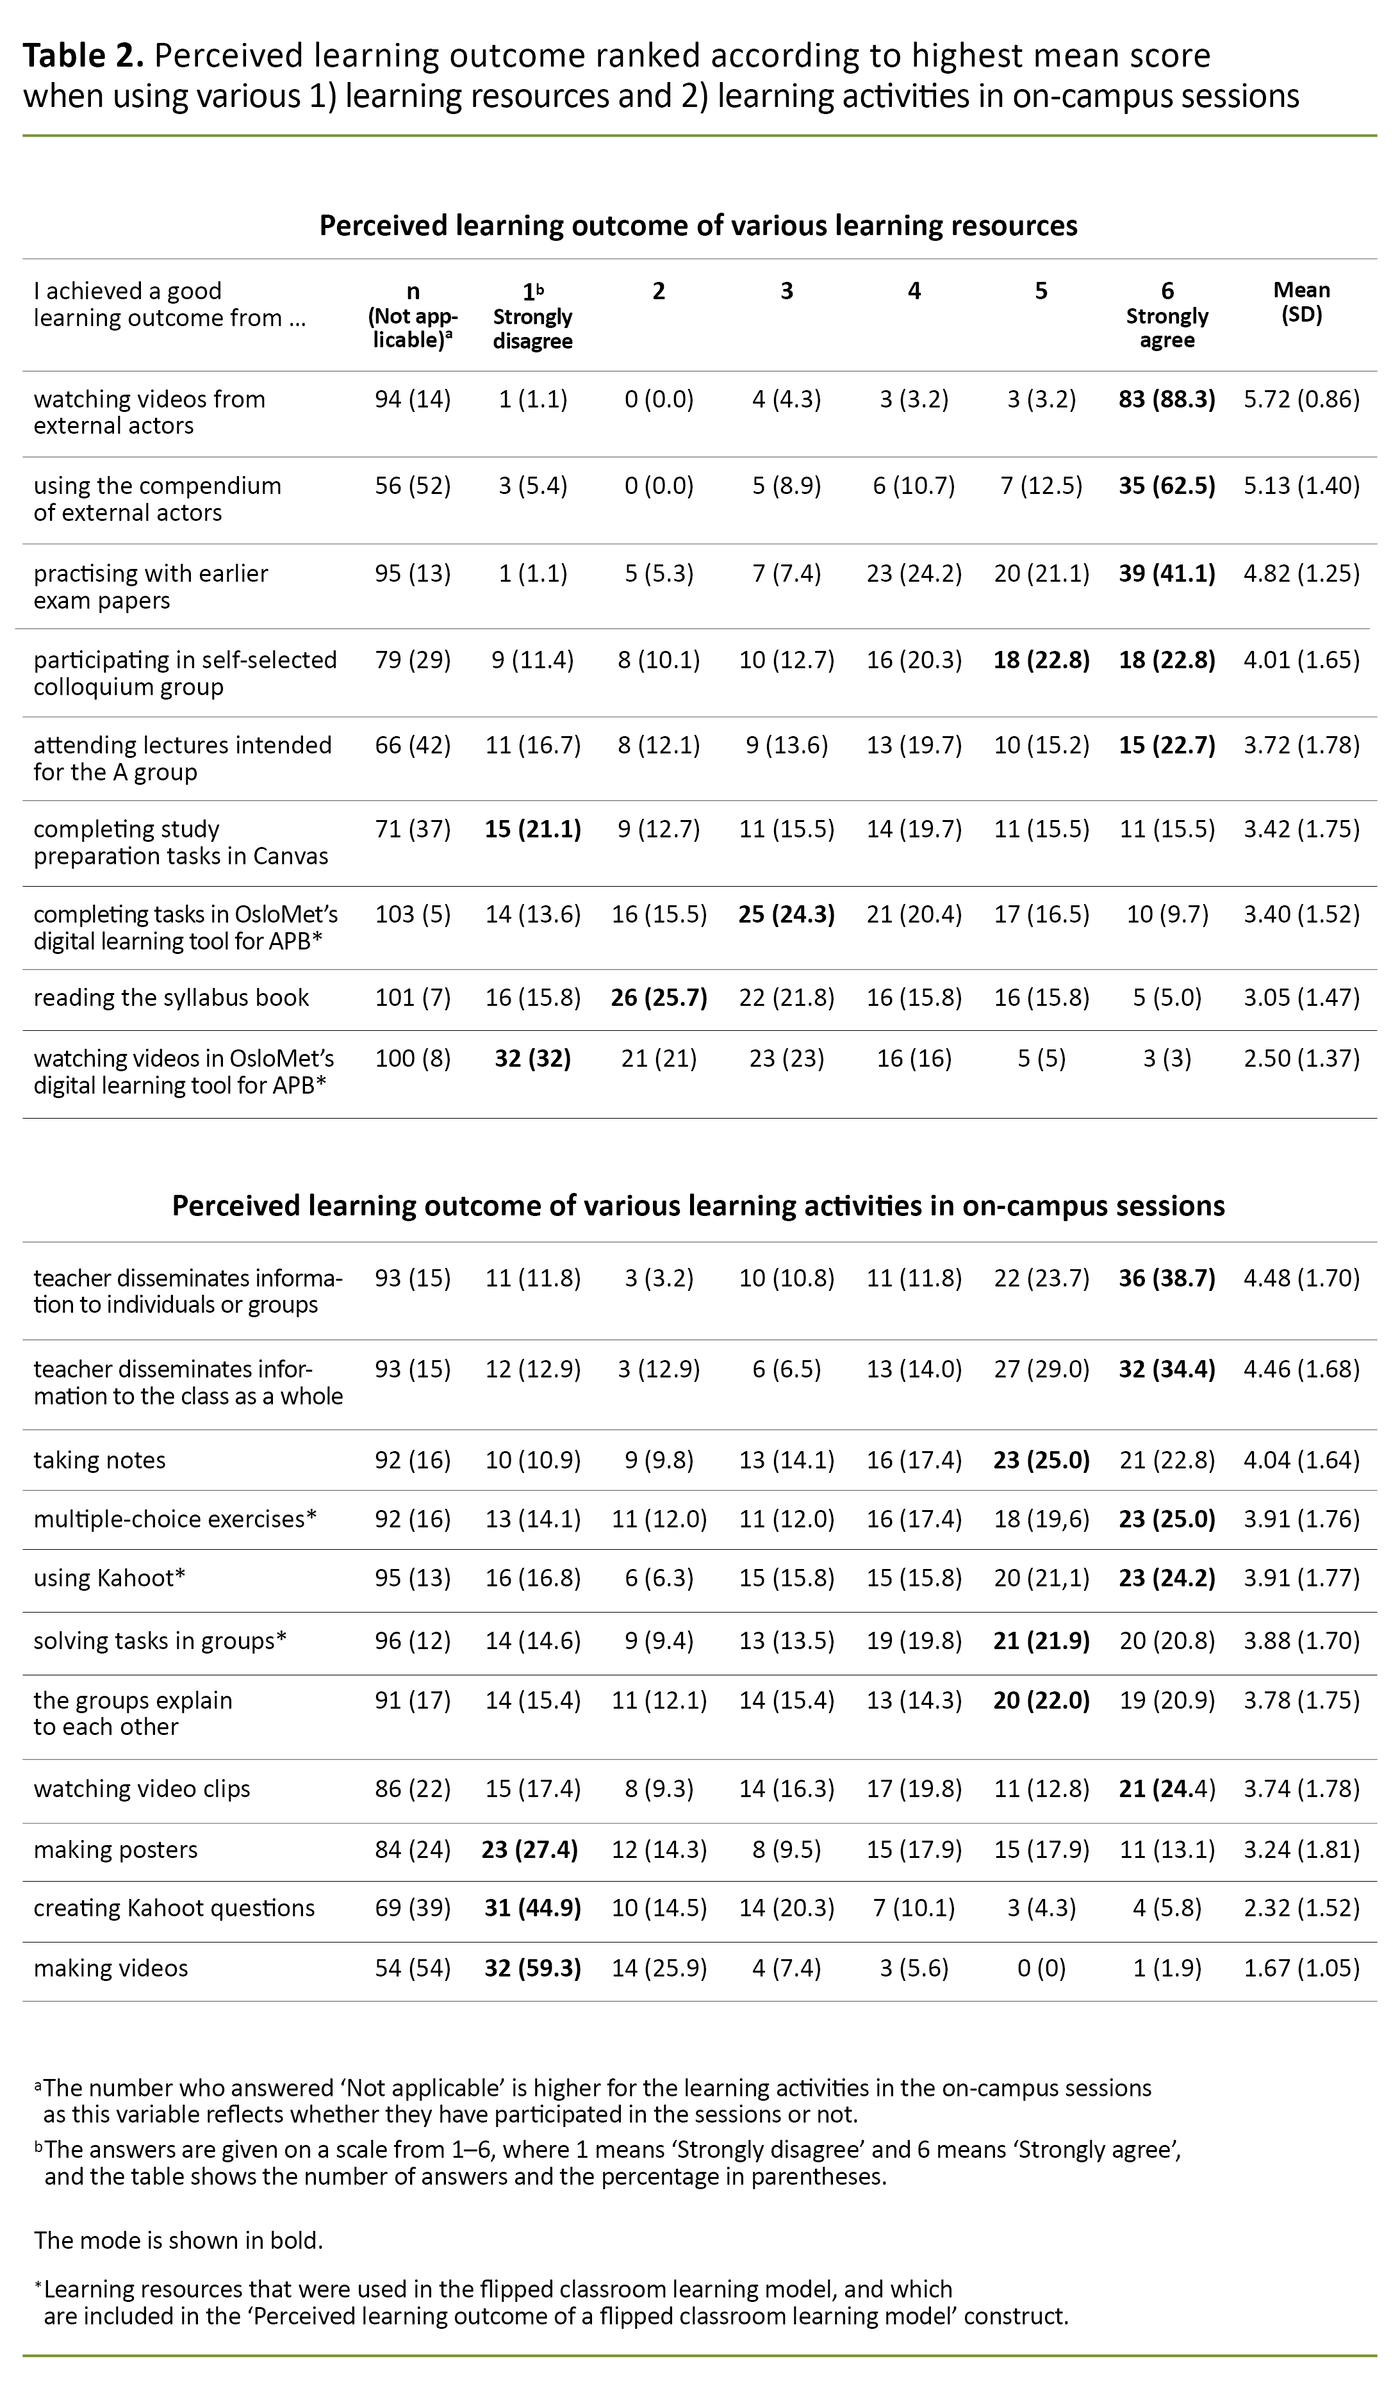 Table 2. Perceived learning outcome ranked according to highest mean score when using various 1) learning resources and 2) learning activities in on-campus sessions